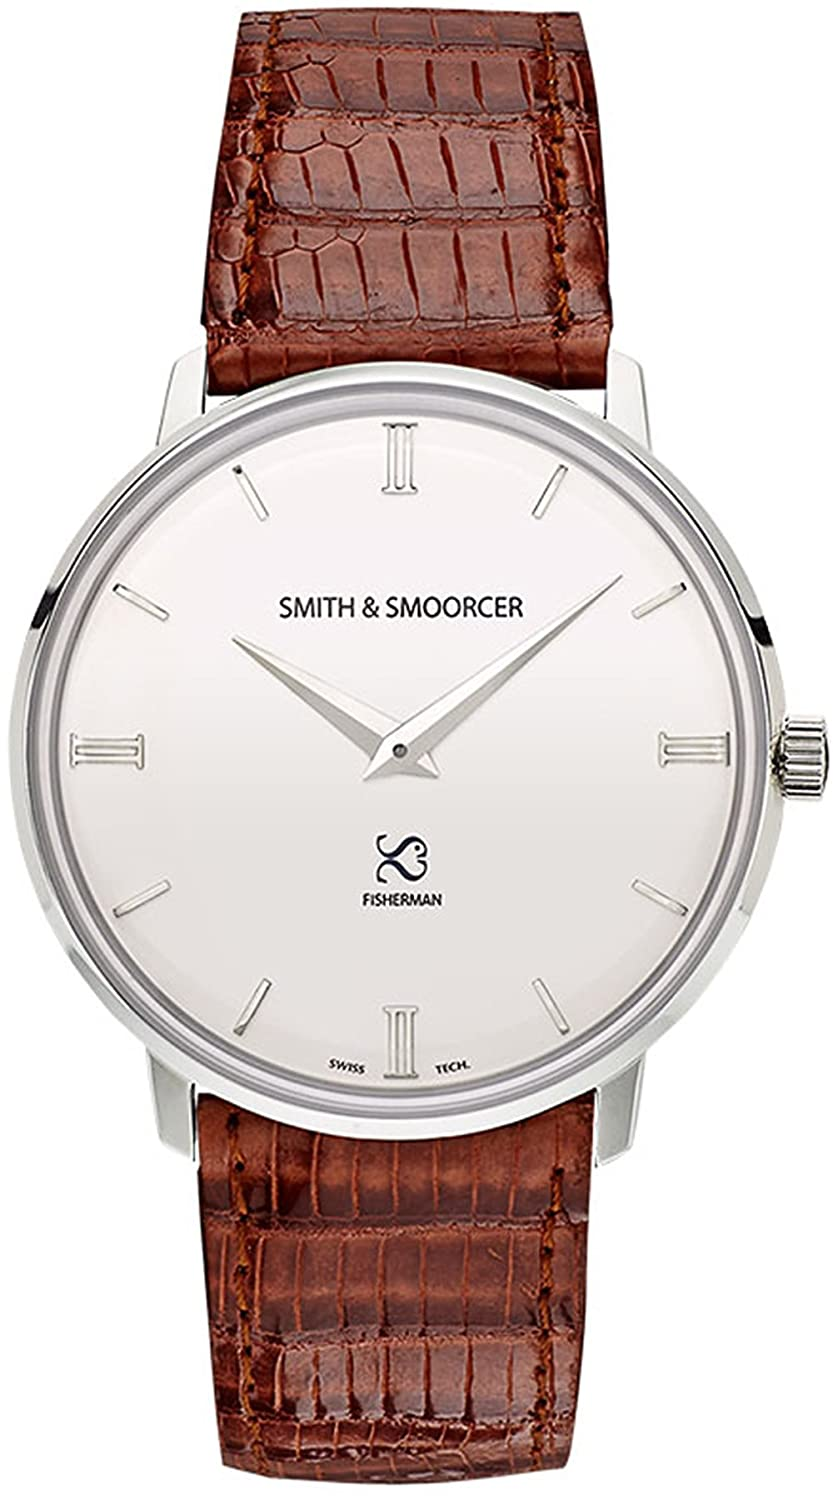 Smith & Smoorcer Fisherman Snowy Elegance Brown Unisex uhren F-1516-ELE-P-B-07